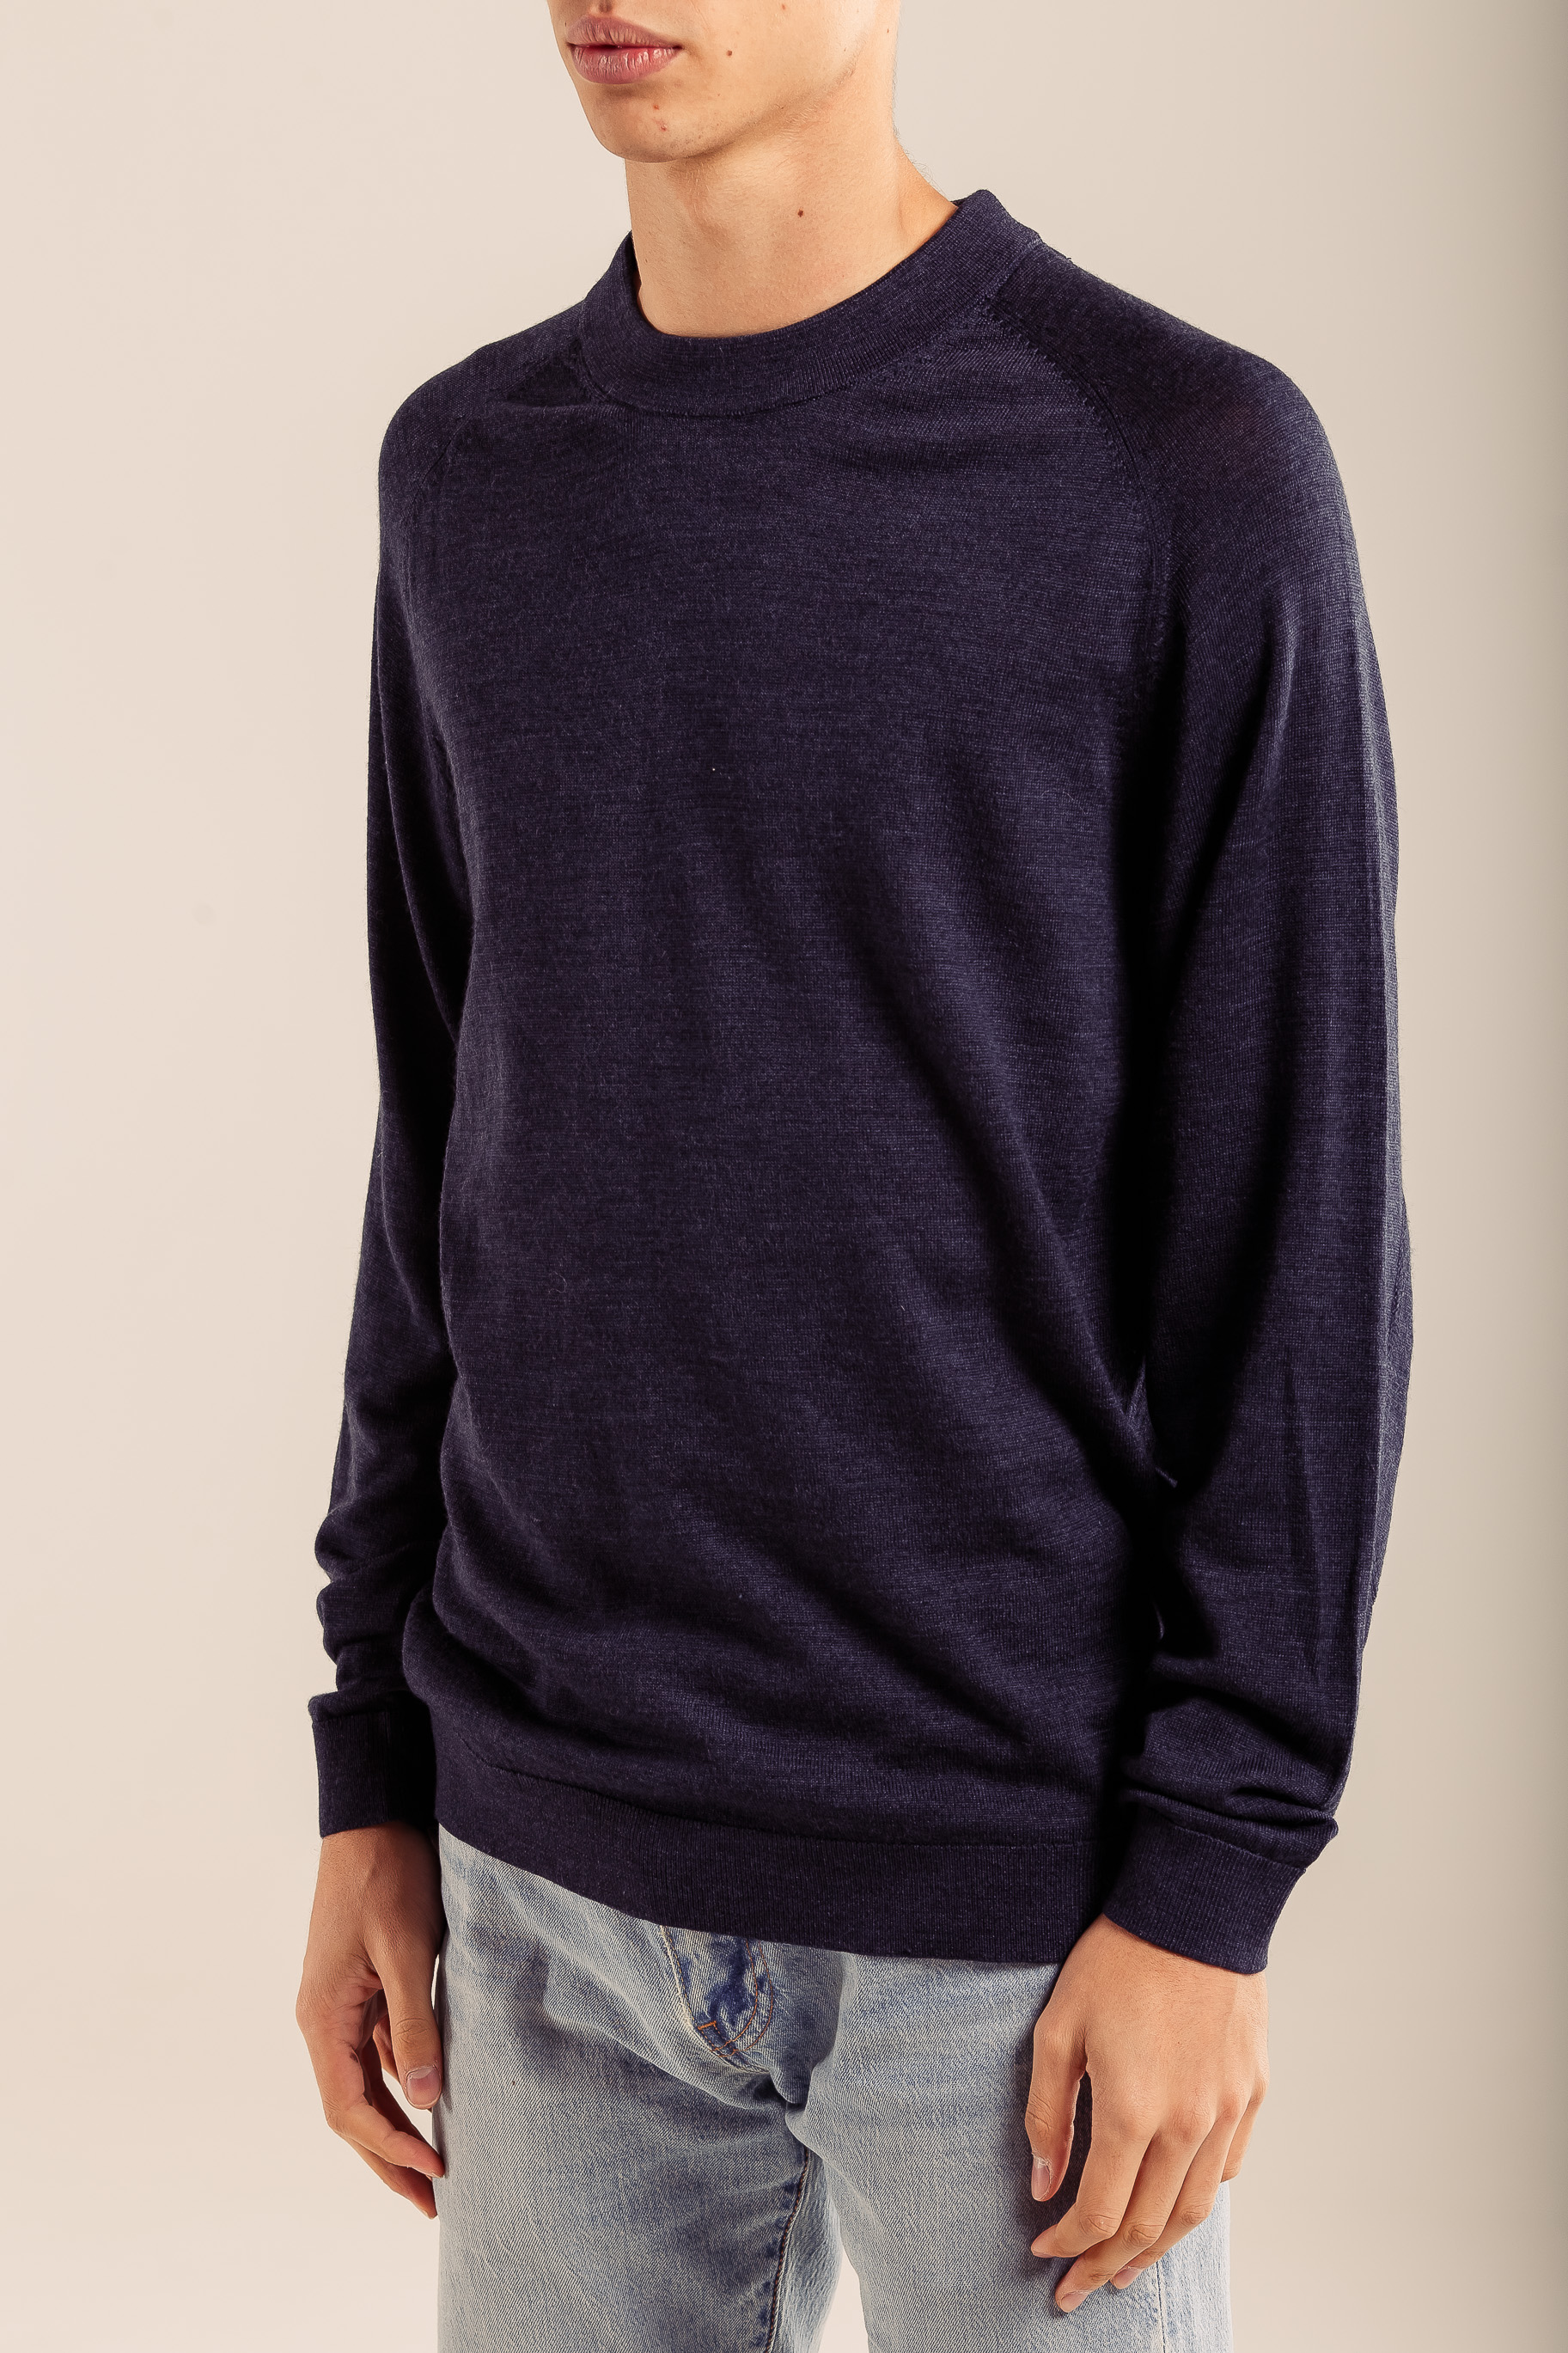 Pulover Selected Casual (4389) photo